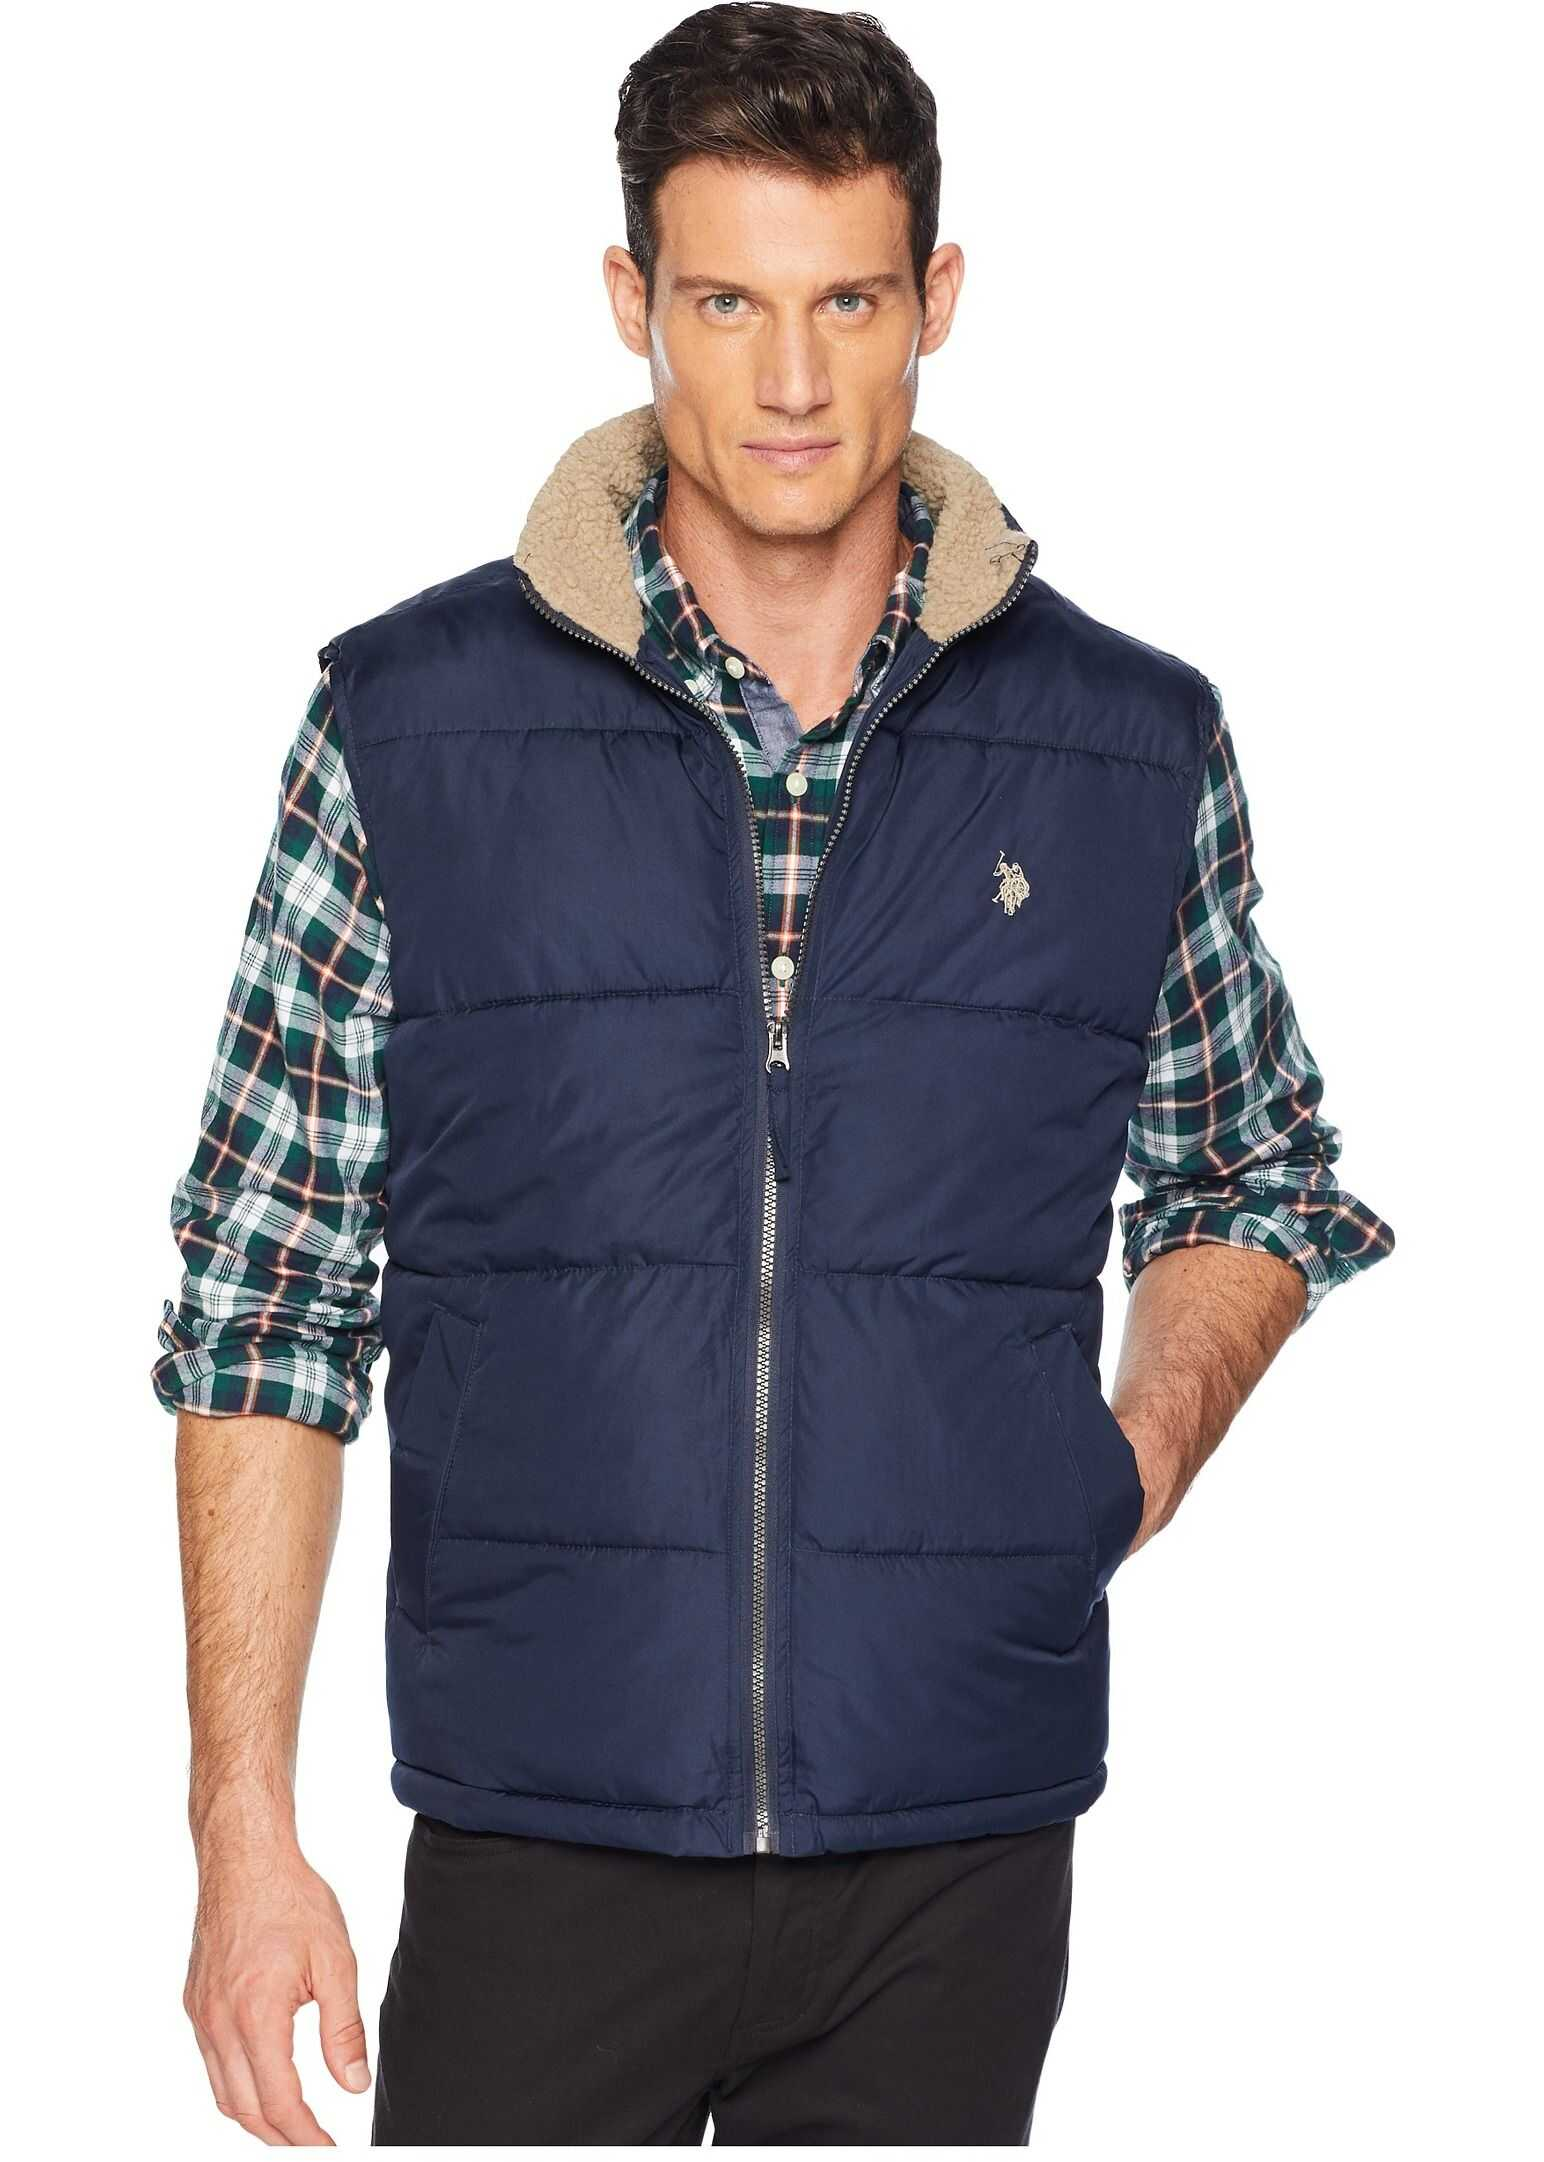 U.S. POLO ASSN. Signature Vest Sherpa Collar Classic Navy